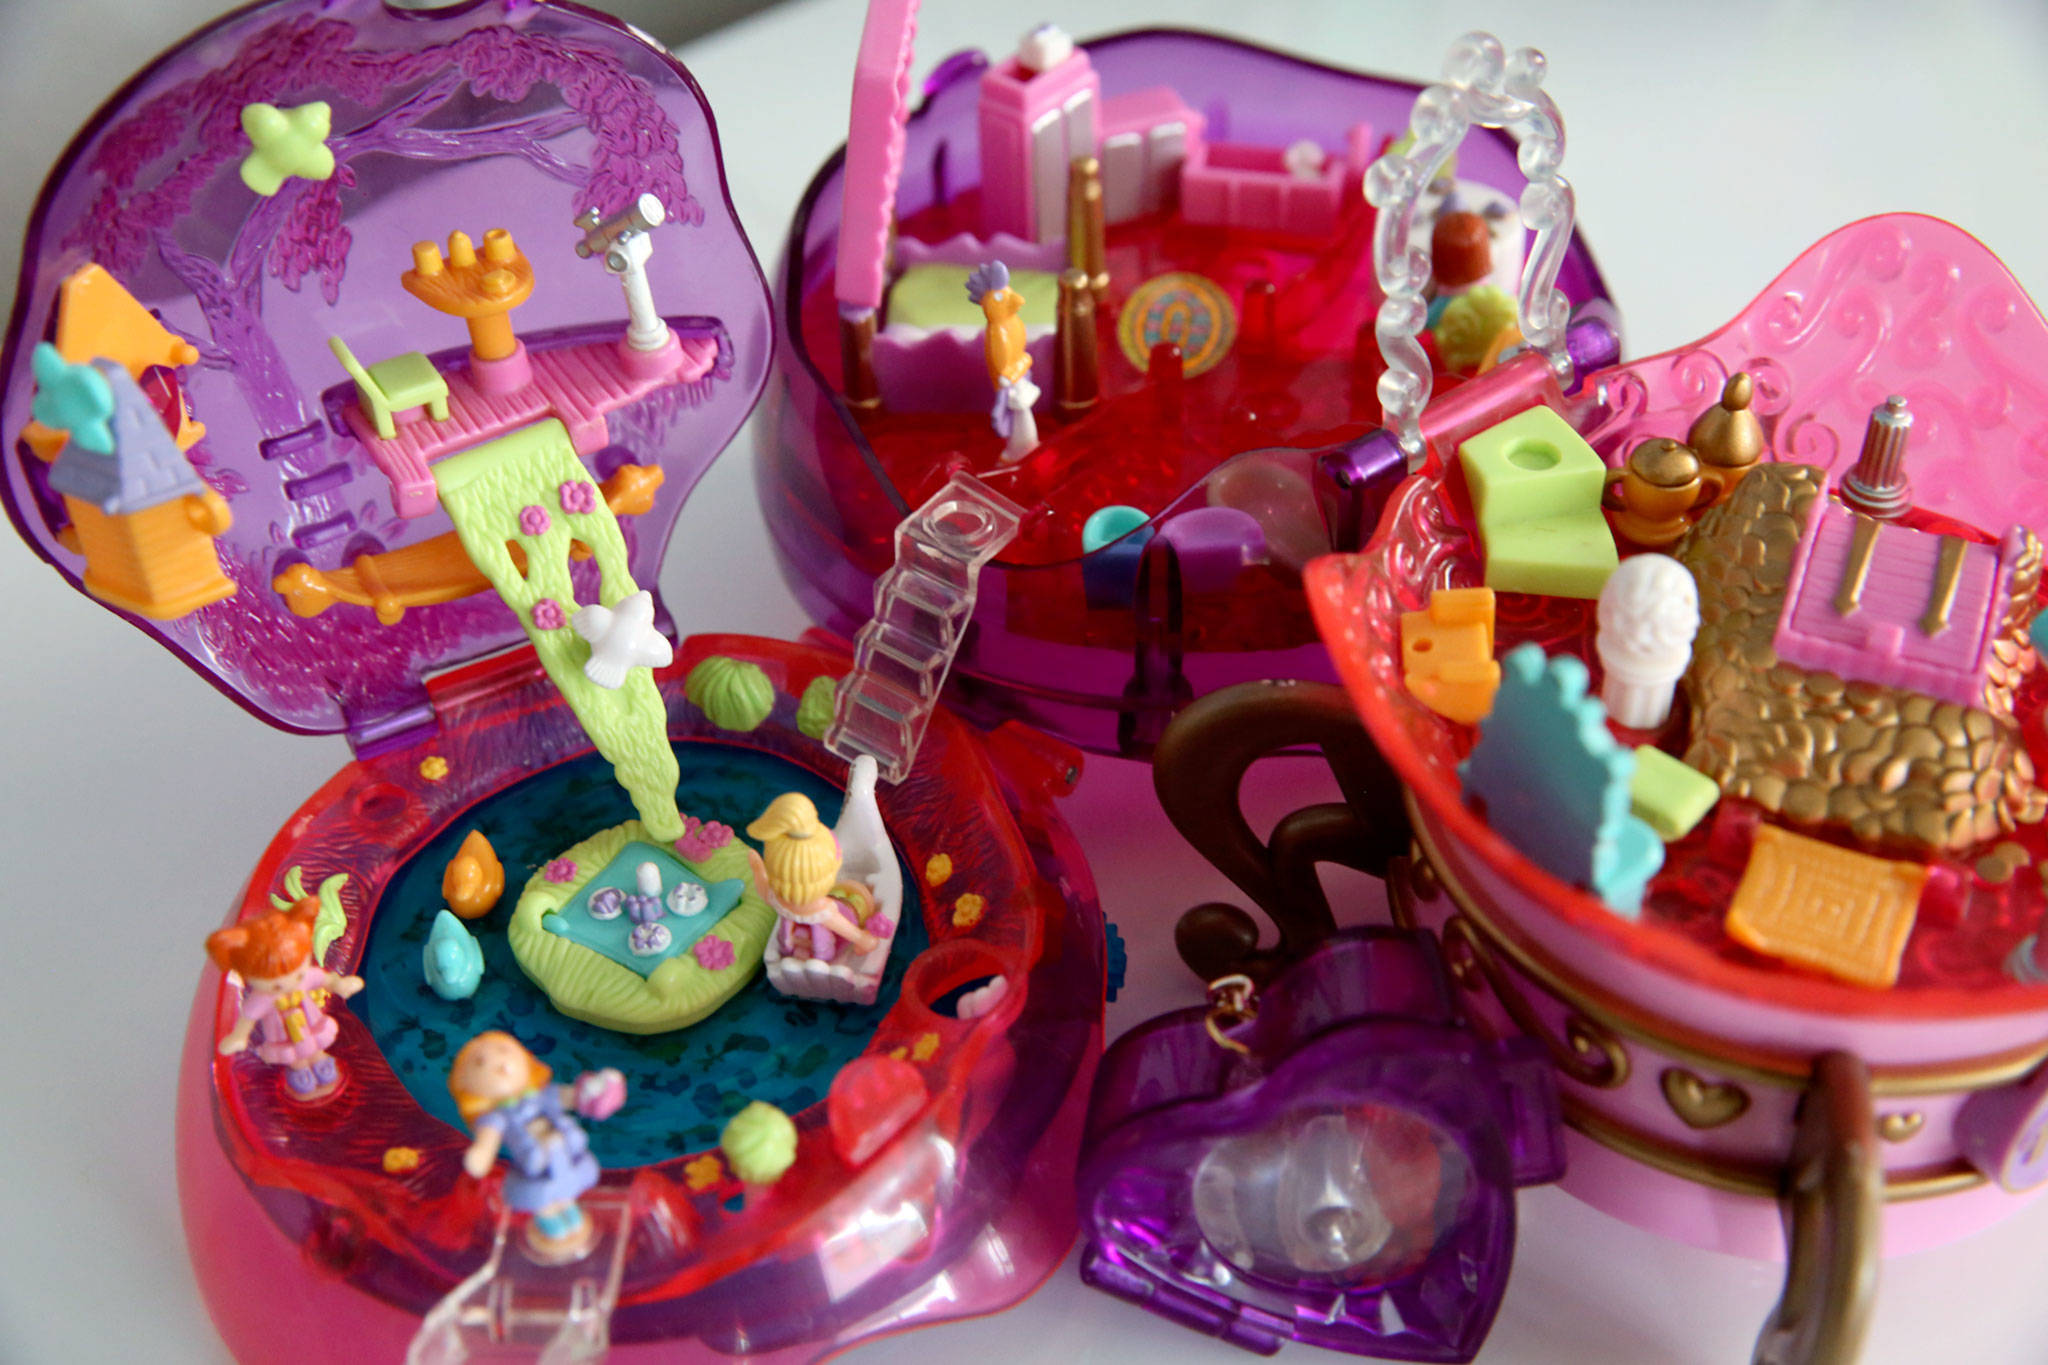 The Jewel Magic Ball is one of the 122 playsets in Roman's collection. (Kevin Clark / The Herald)